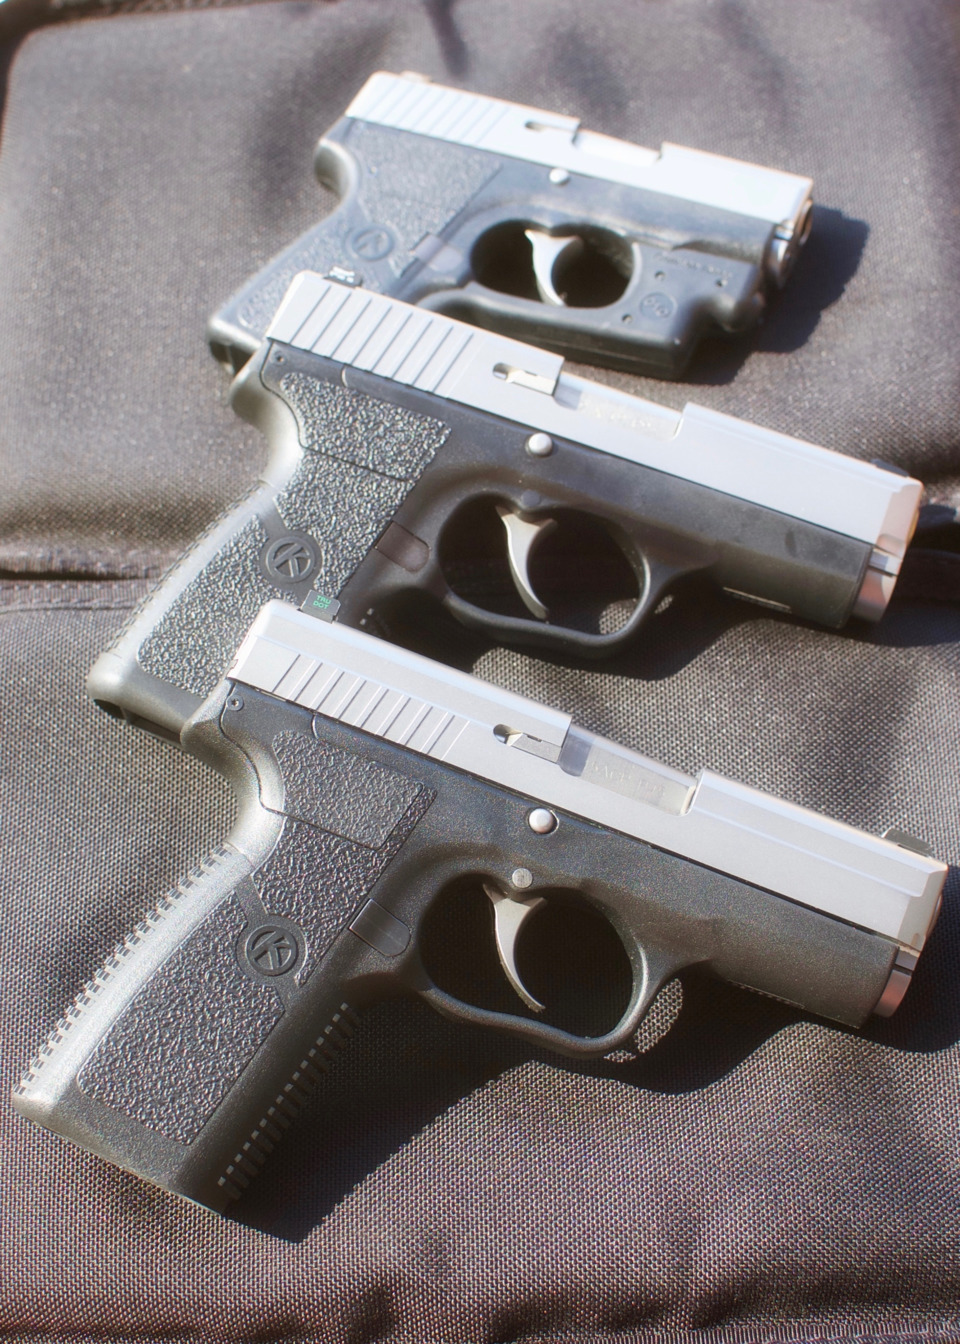 A Focused Look at the Kahr P9